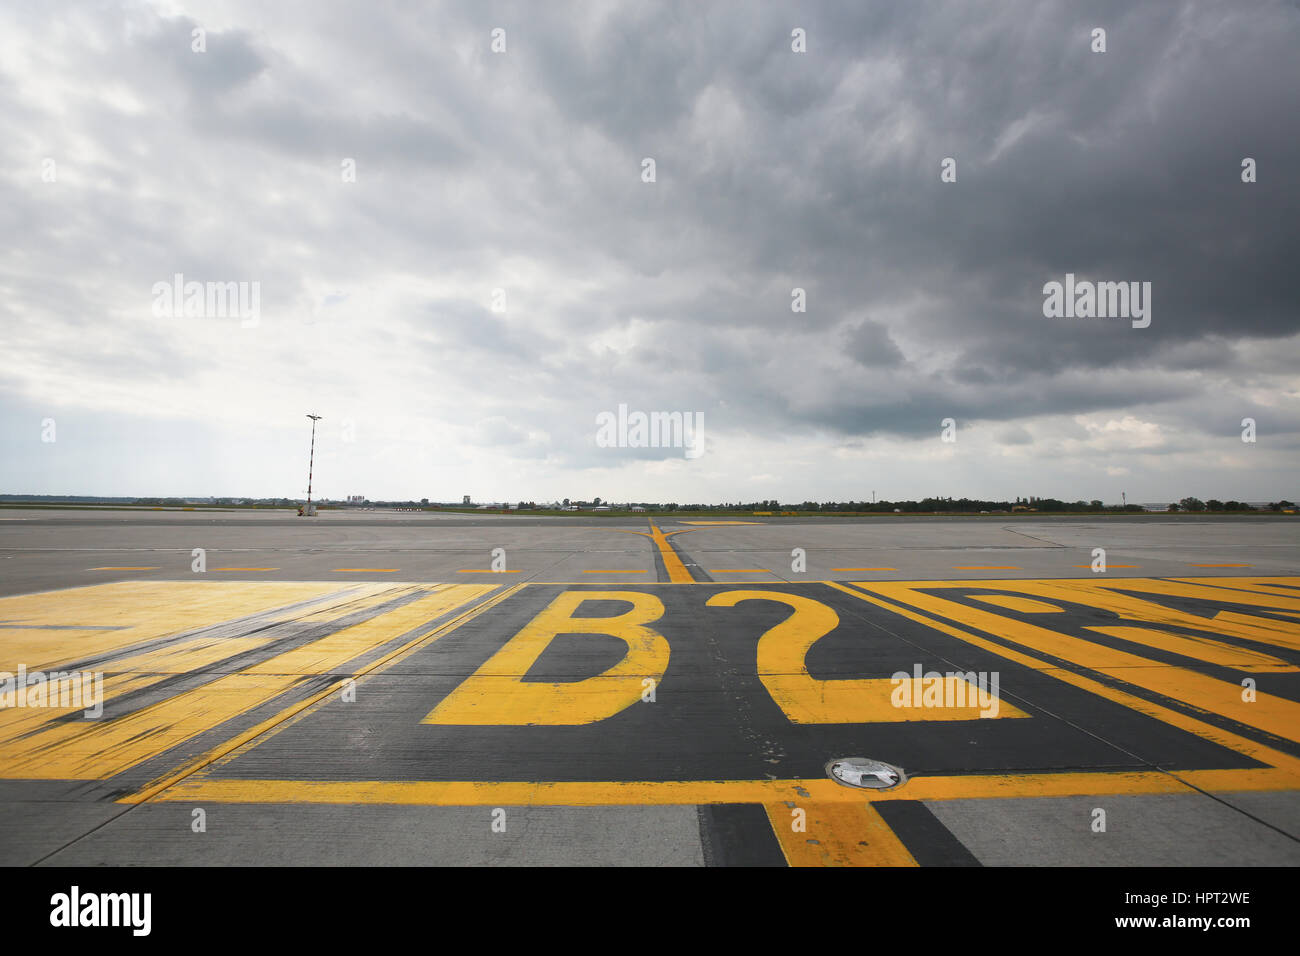 Airfield - marking on taxiway is heading to runway. - Stock Image